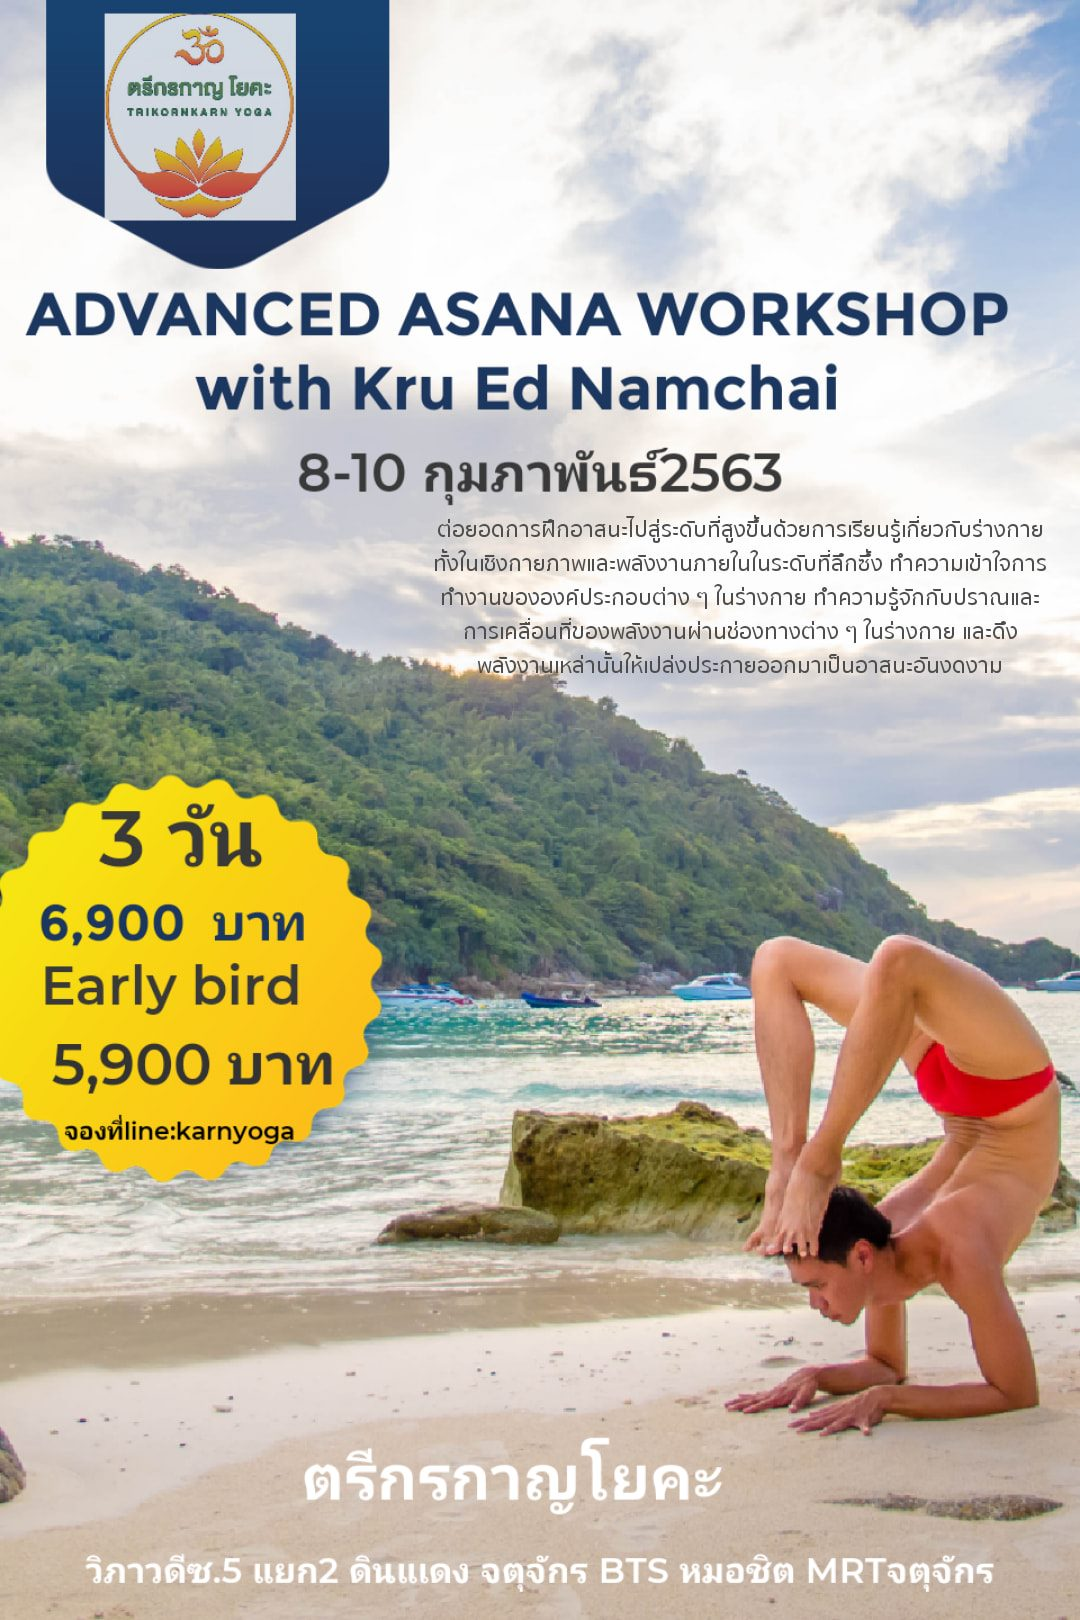 Advanced Asana Workshop with Kru Ed Namchai